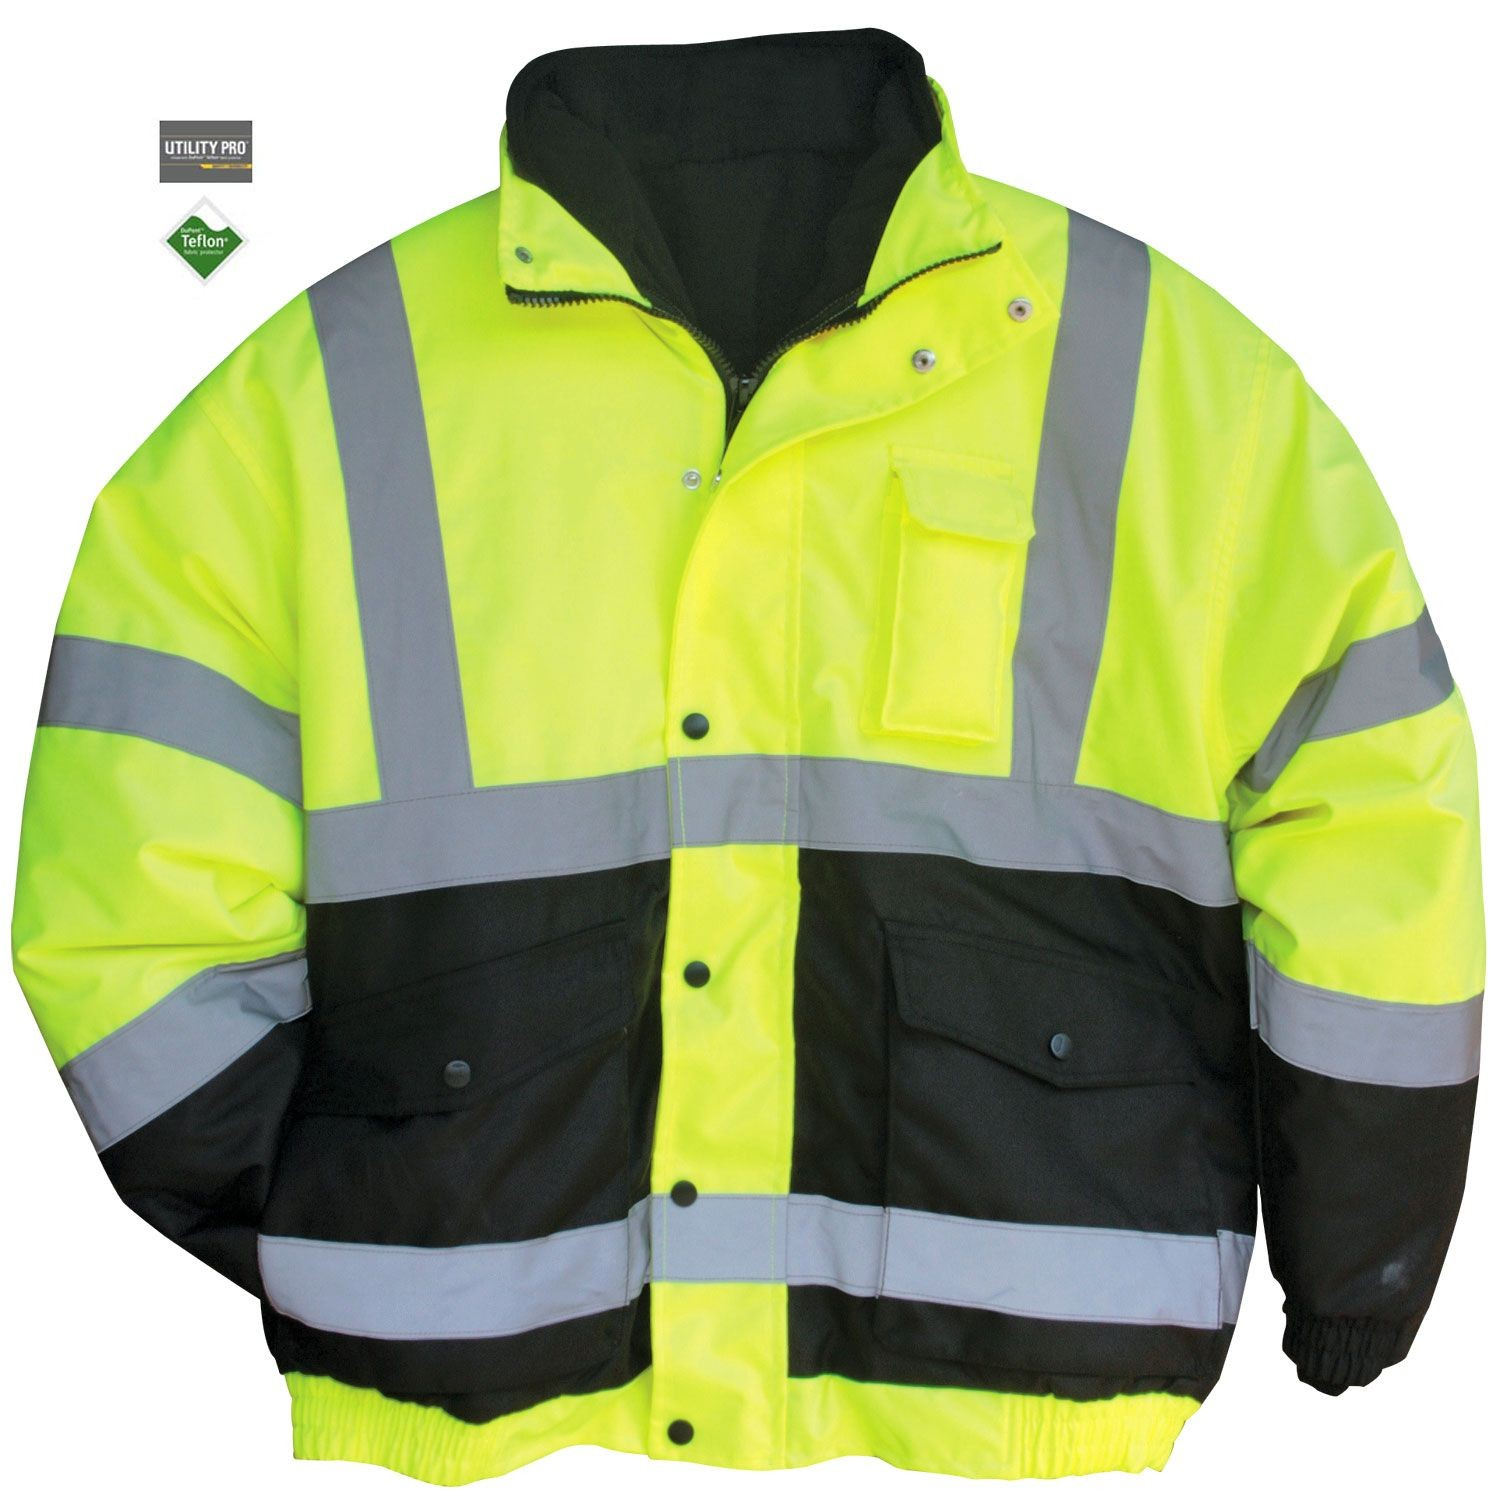 Yellow UHV575,Lime Utility Pro High Visibility Reflective Safety Bomber Jacket with Removable Fleece Liner With Waterproof Teflon Protection Medium